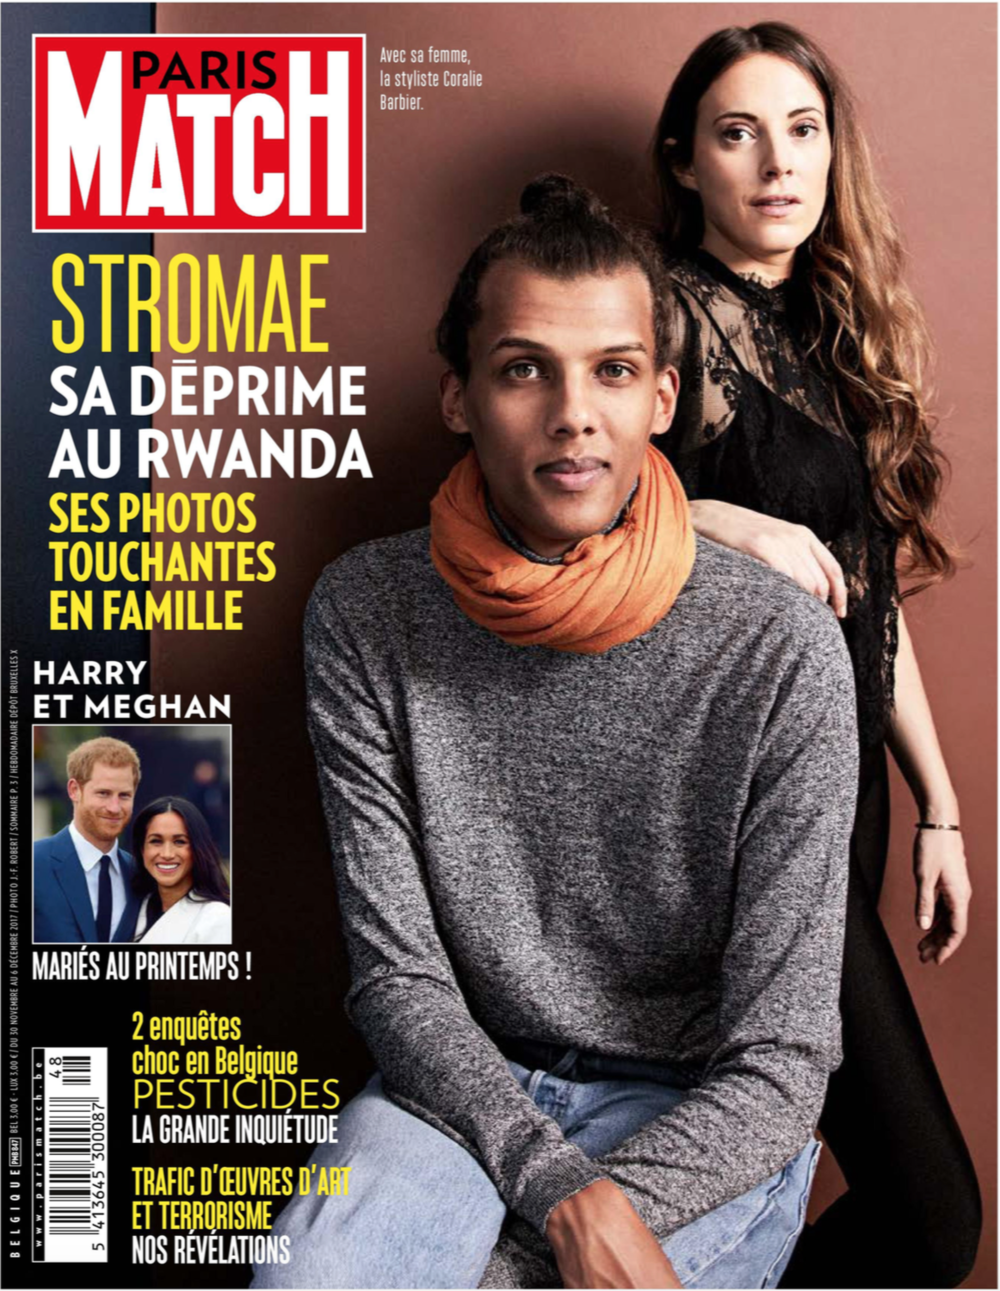 paris match 2.png